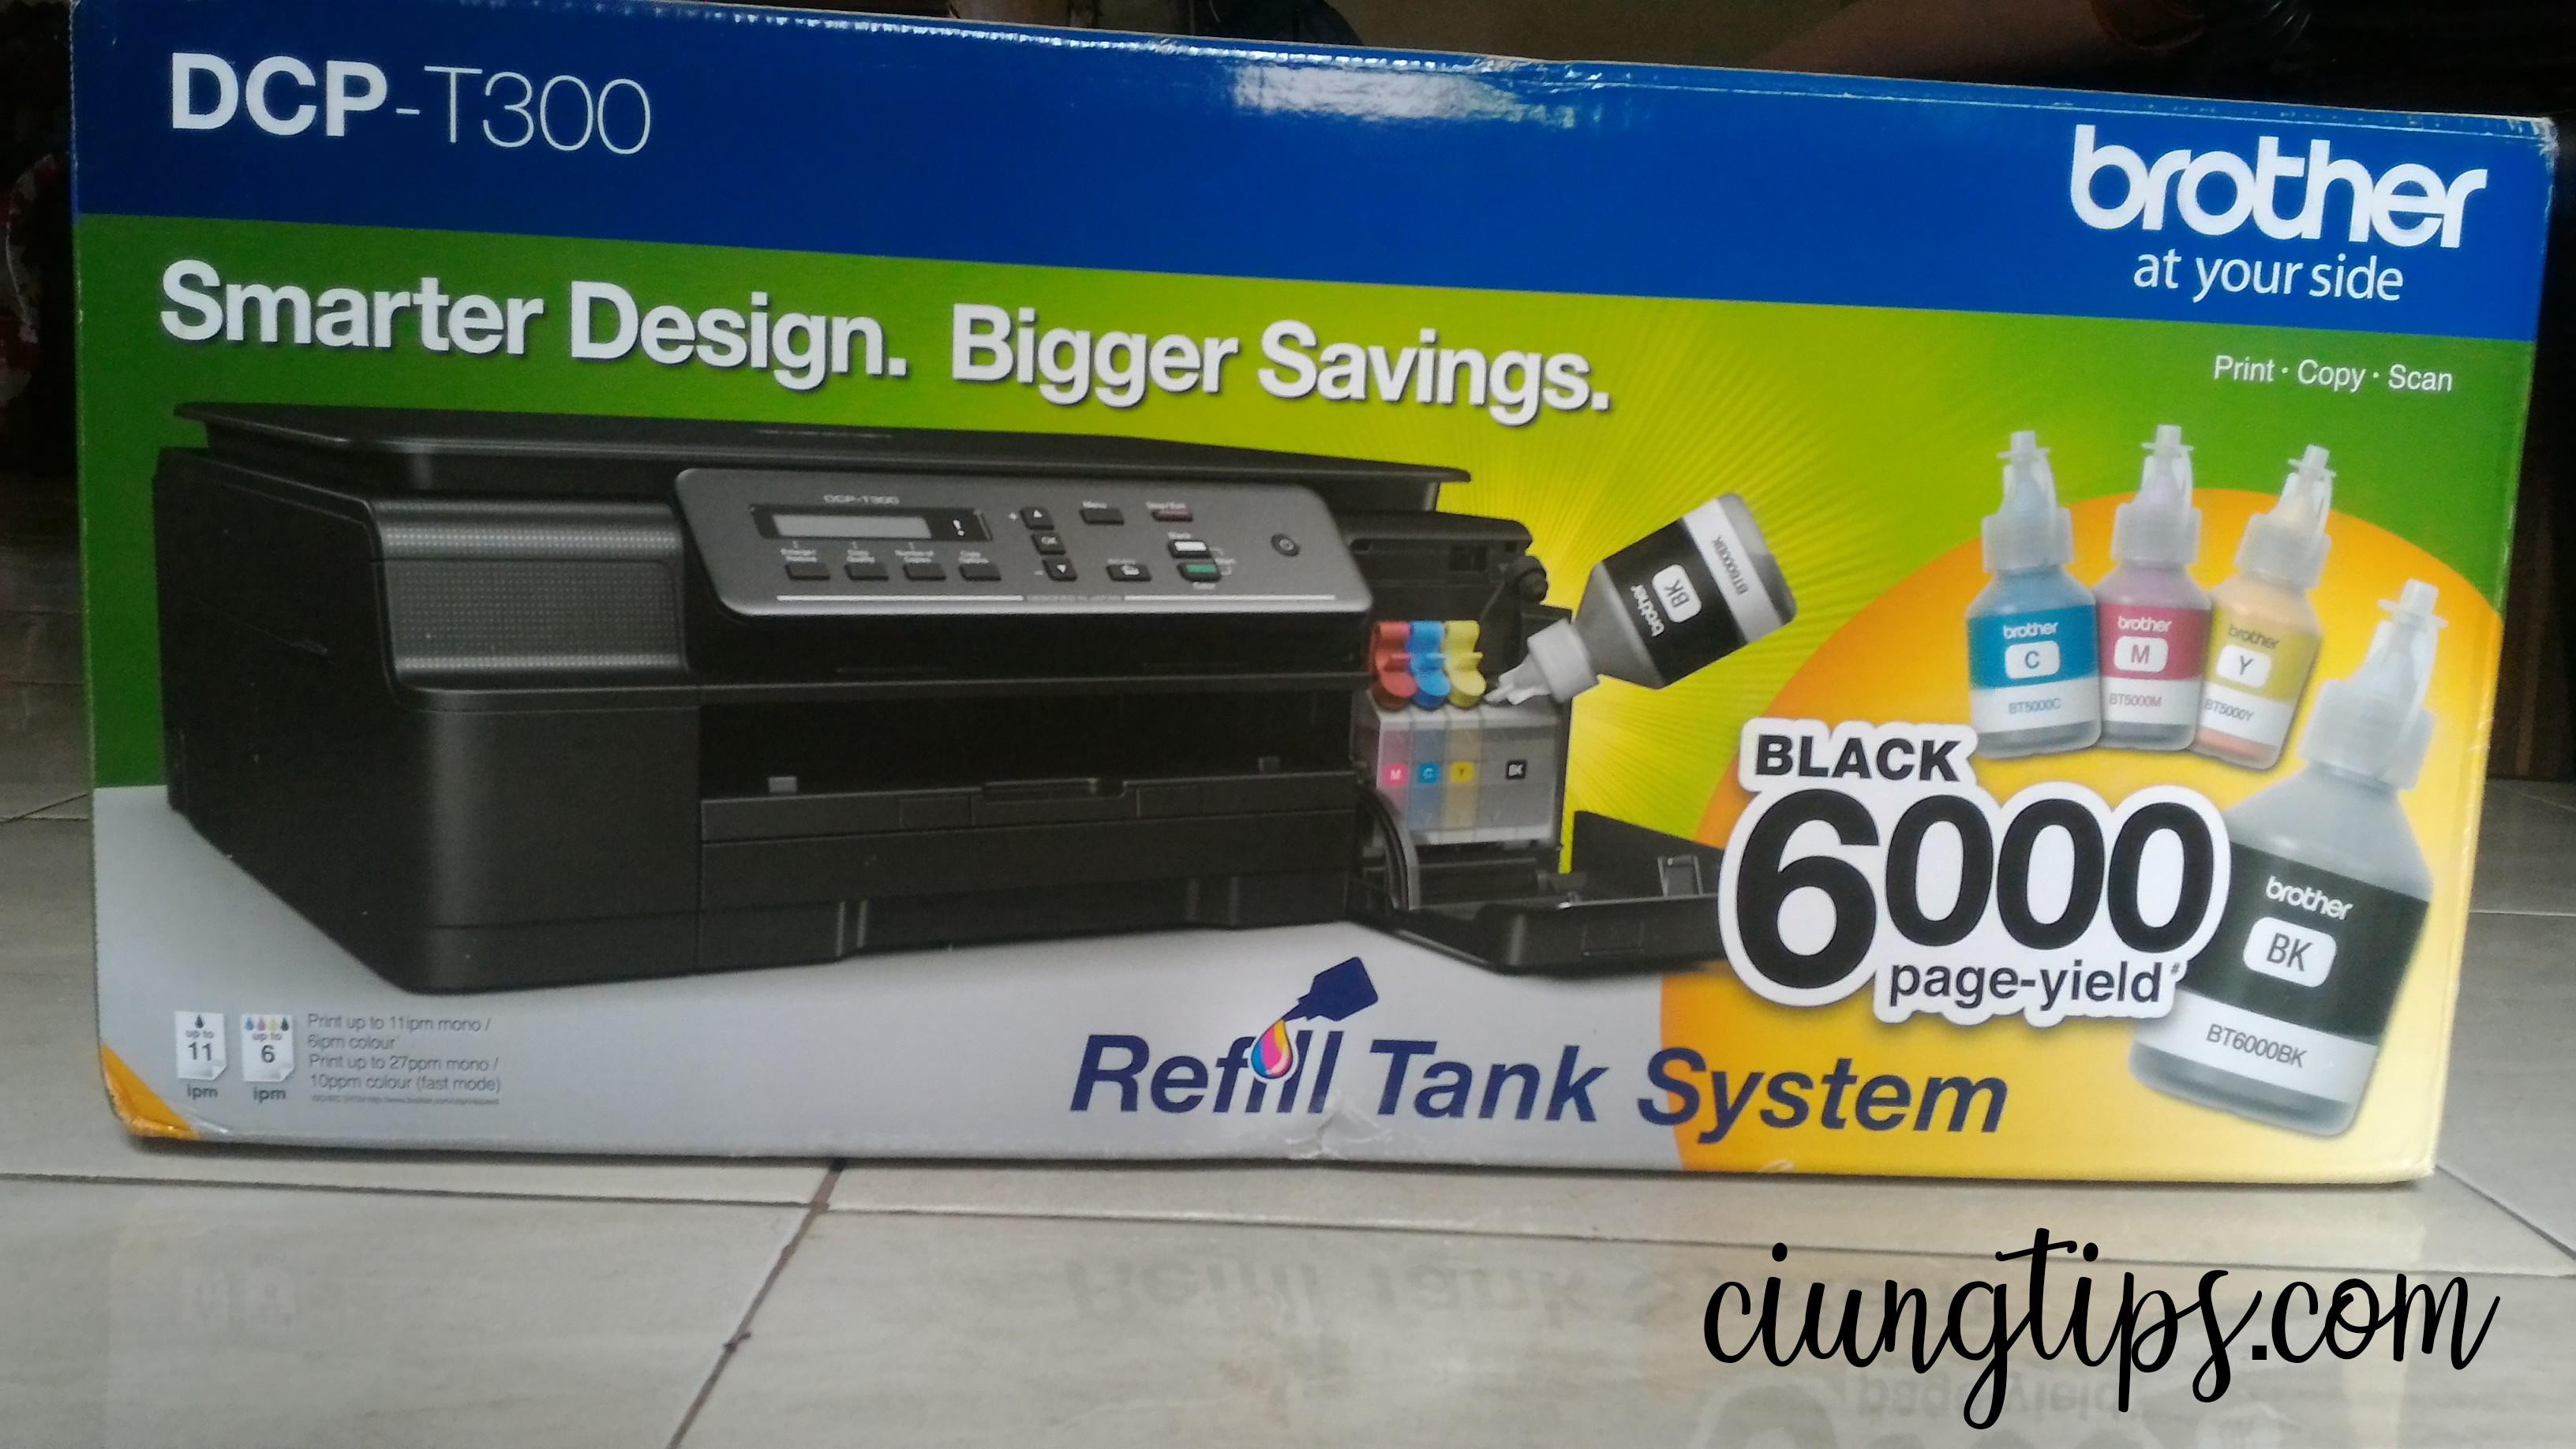 Jpeg. Memilih Printer Brother DCP-T300 Sebagai Partner